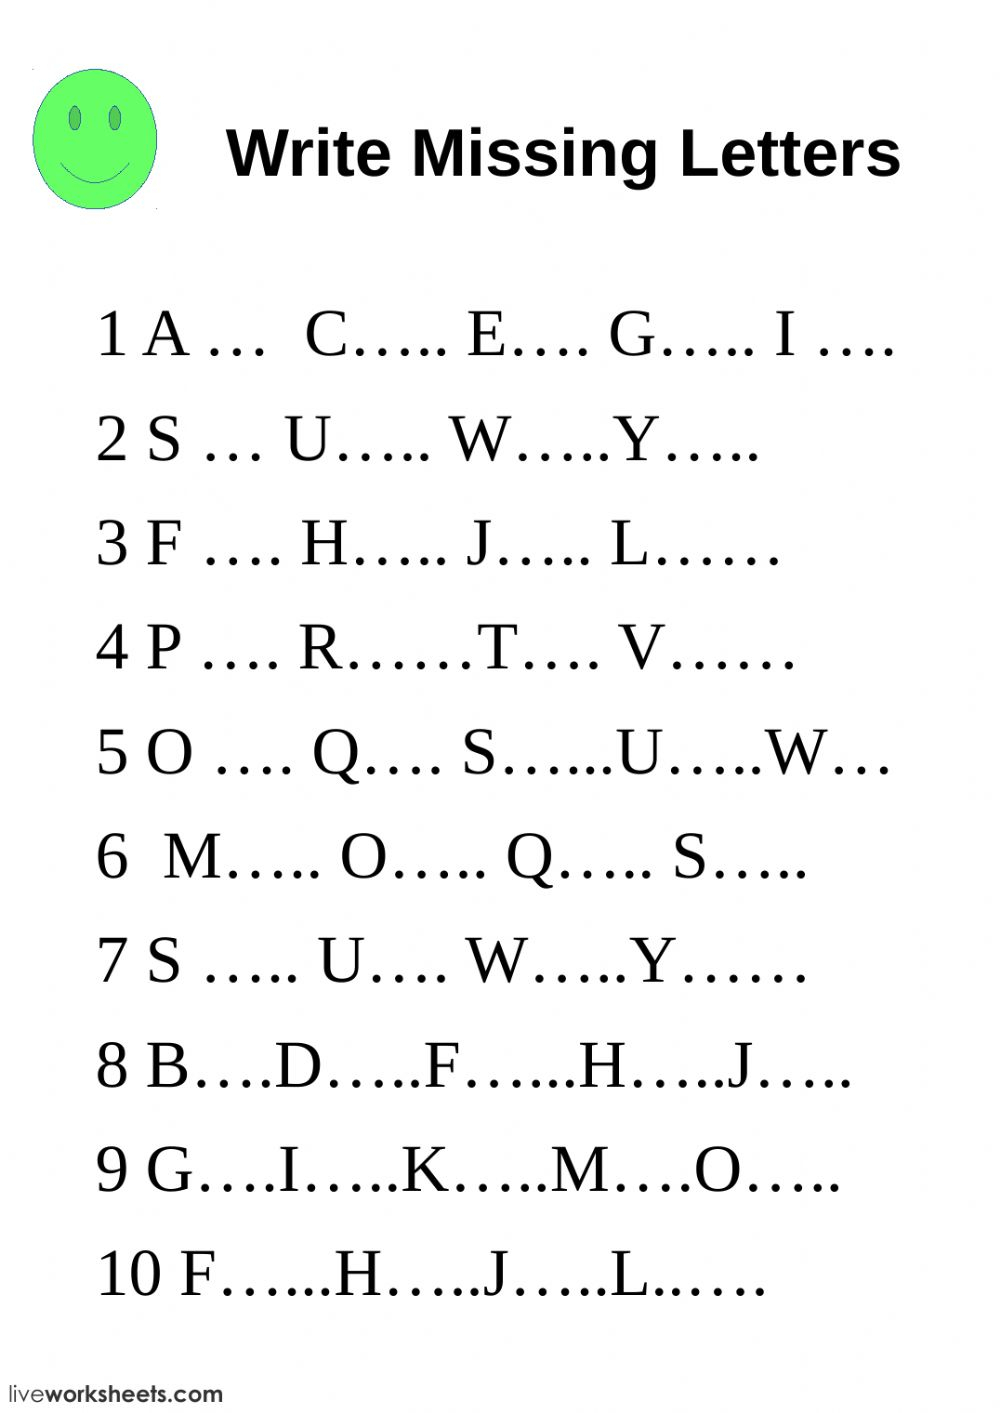 Write Missing Letters - Interactive Worksheet with Alphabet Code Worksheets